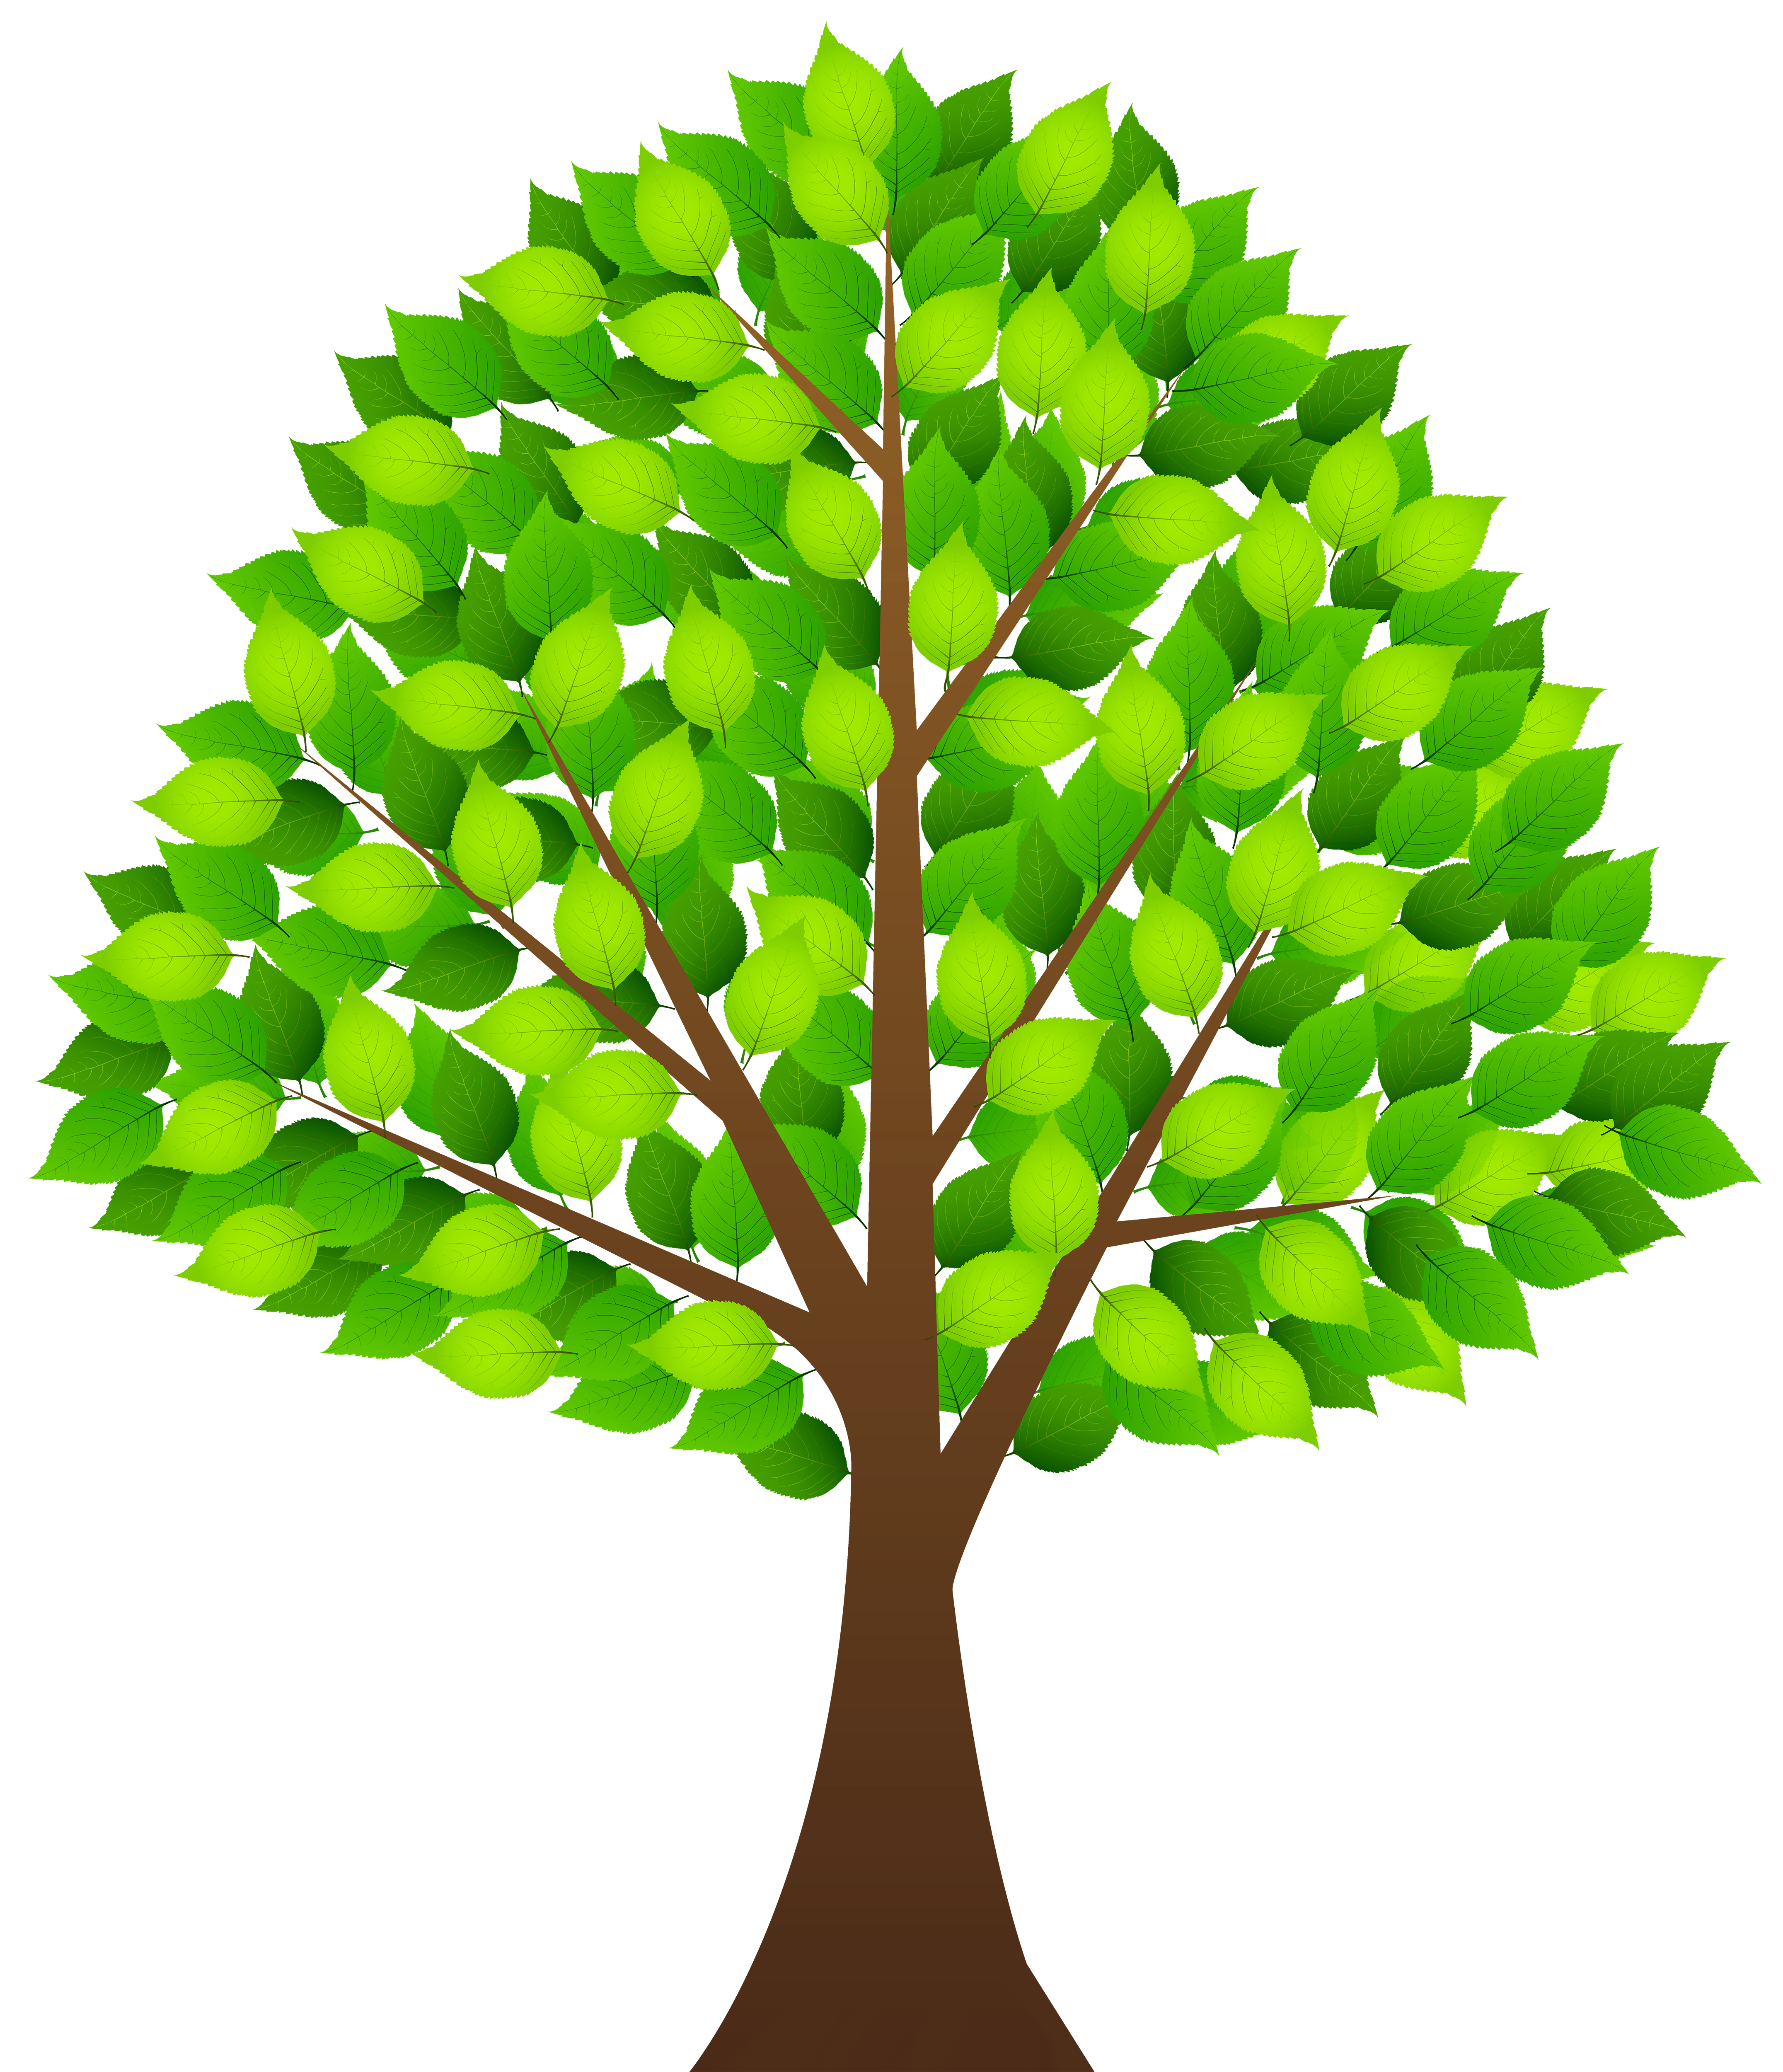 Green tree foliage clipart 20 free Cliparts | Download ...